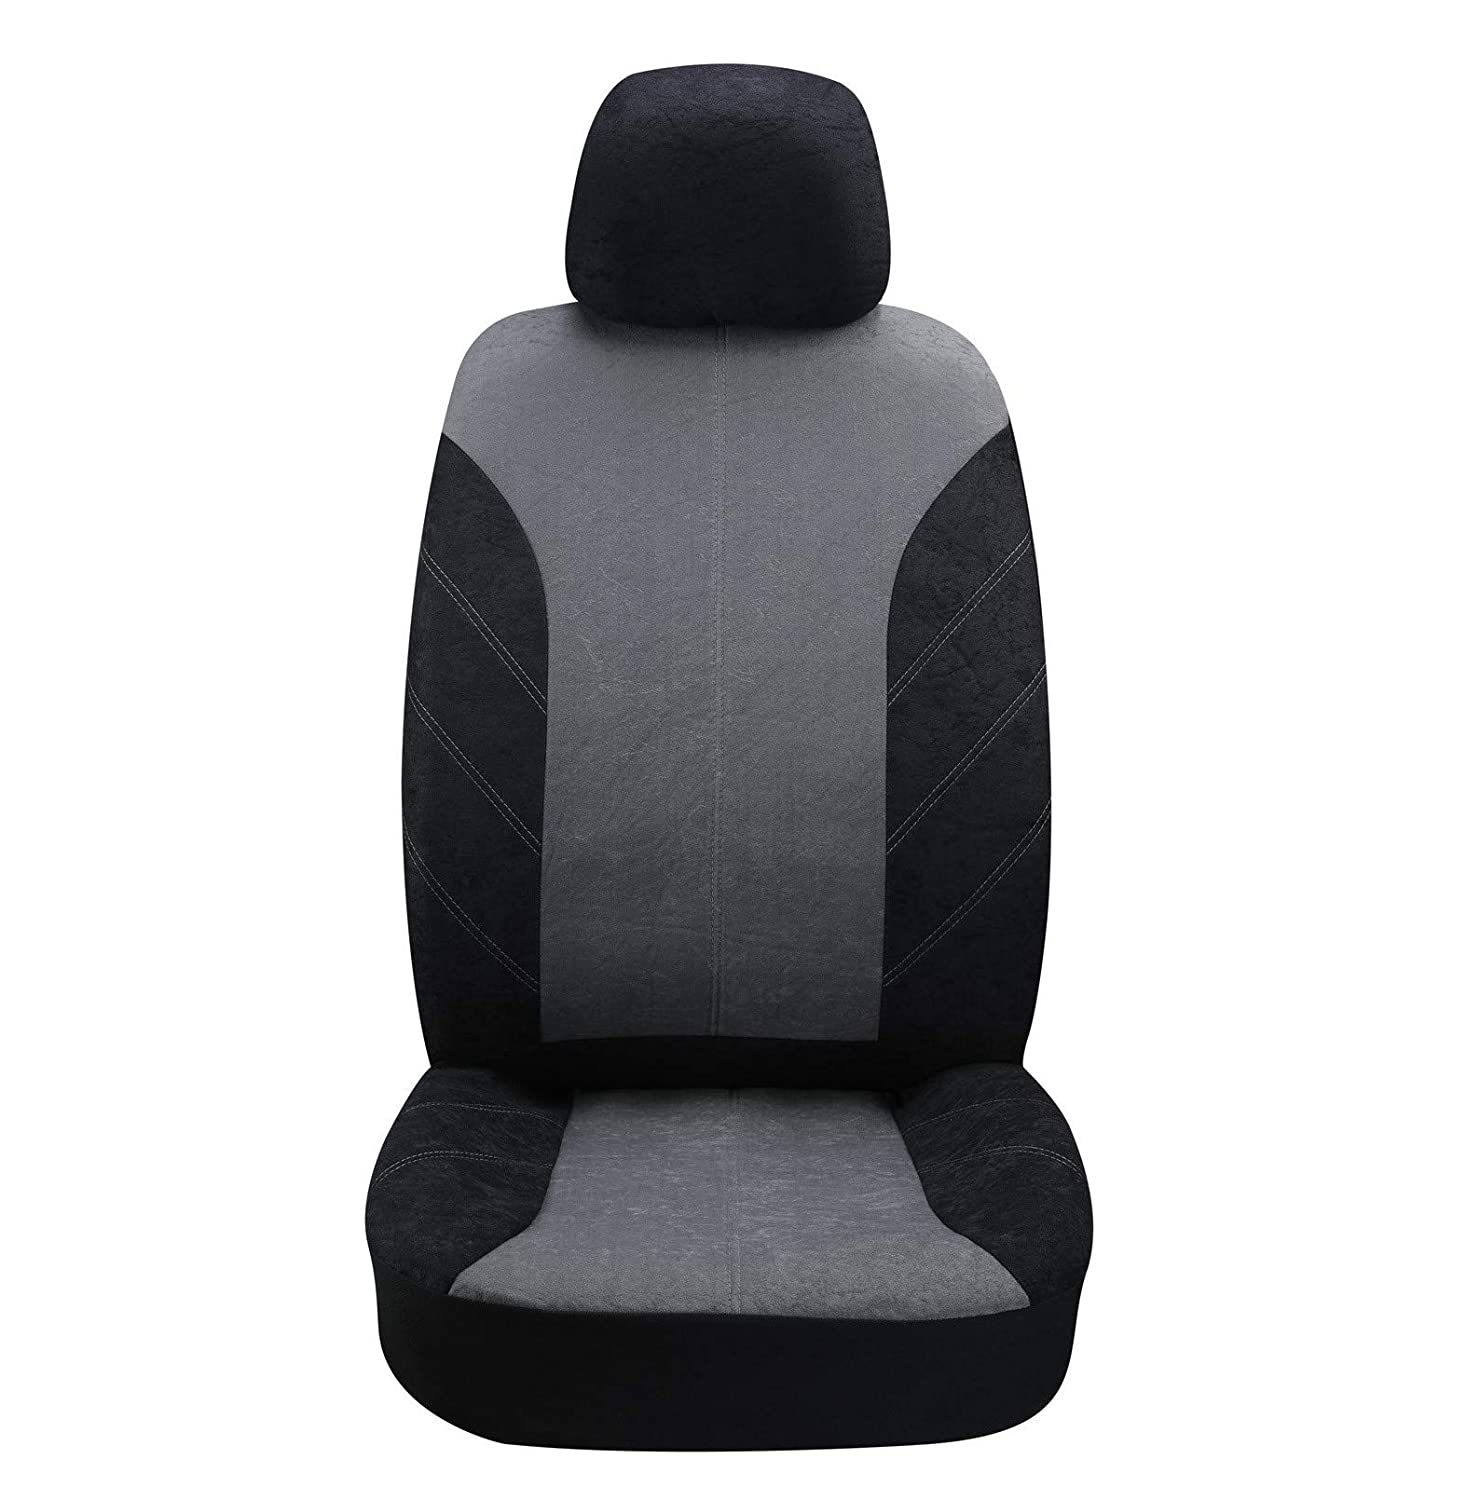 Autojoy Speckled Velvet Car Seat Covers-Breathable,Quick Installation,Auto Protection,Durable-Universal Fit Most Car Truck or Van Black and Grey SUV